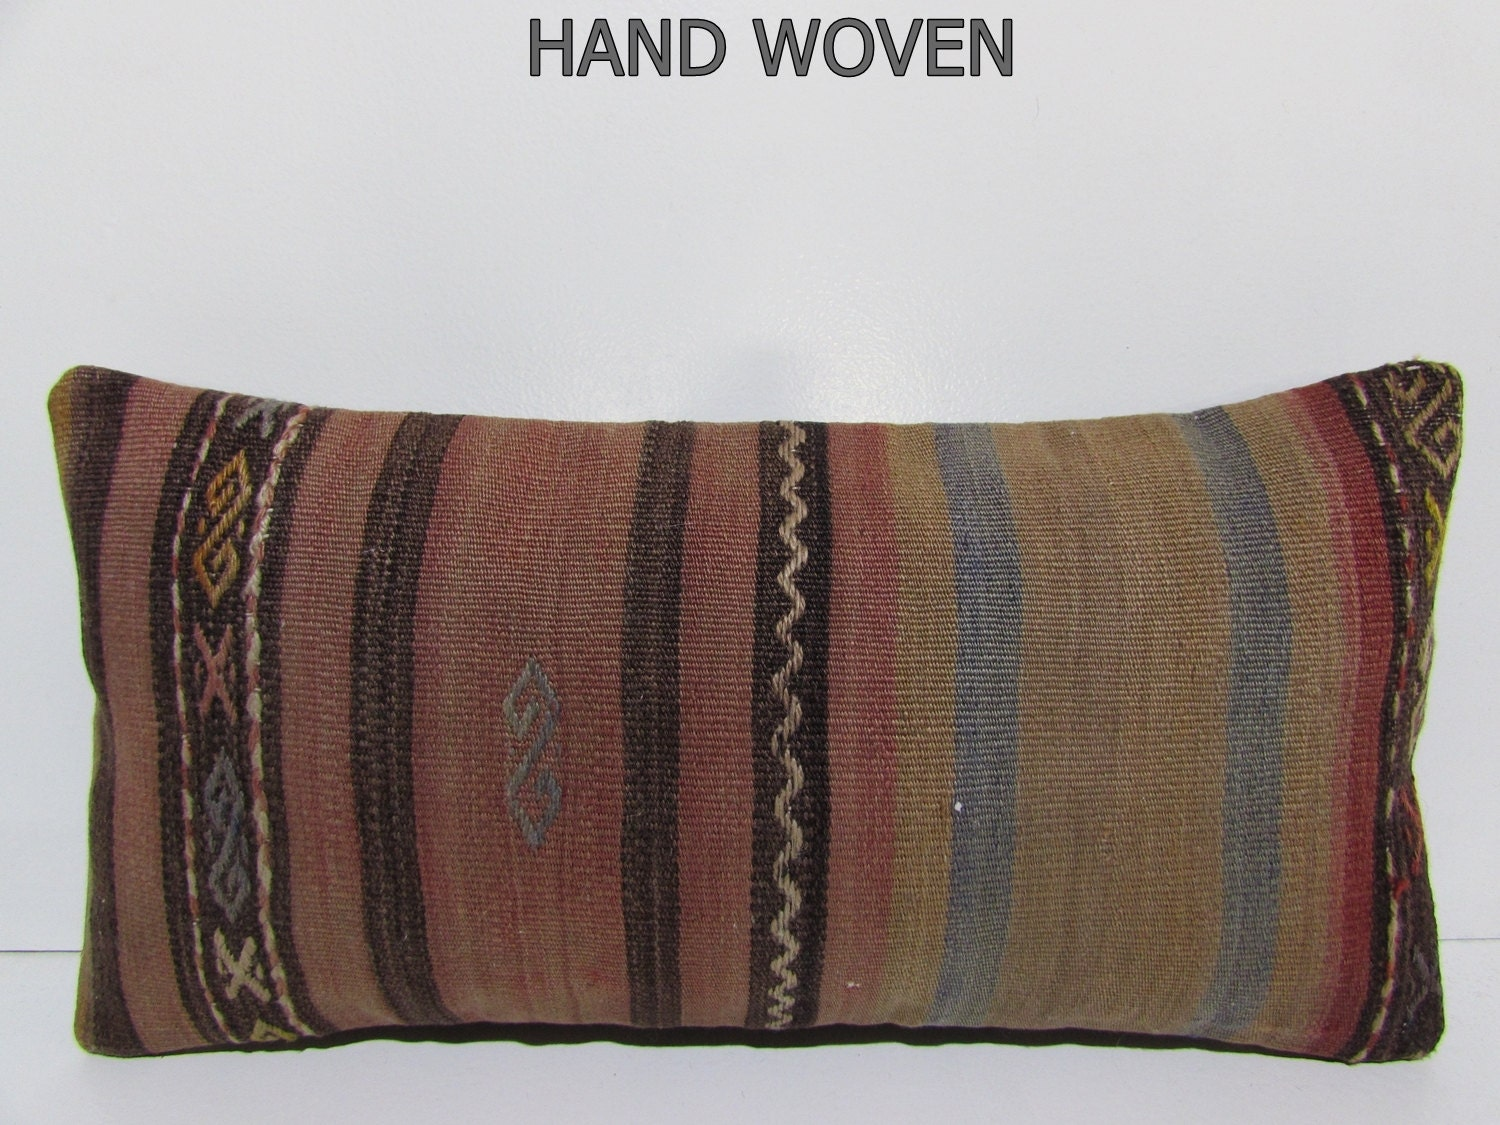 Throw Pillows King Size Bed : 12x24 woolen kilim pillow zigzag throw pillow chevron